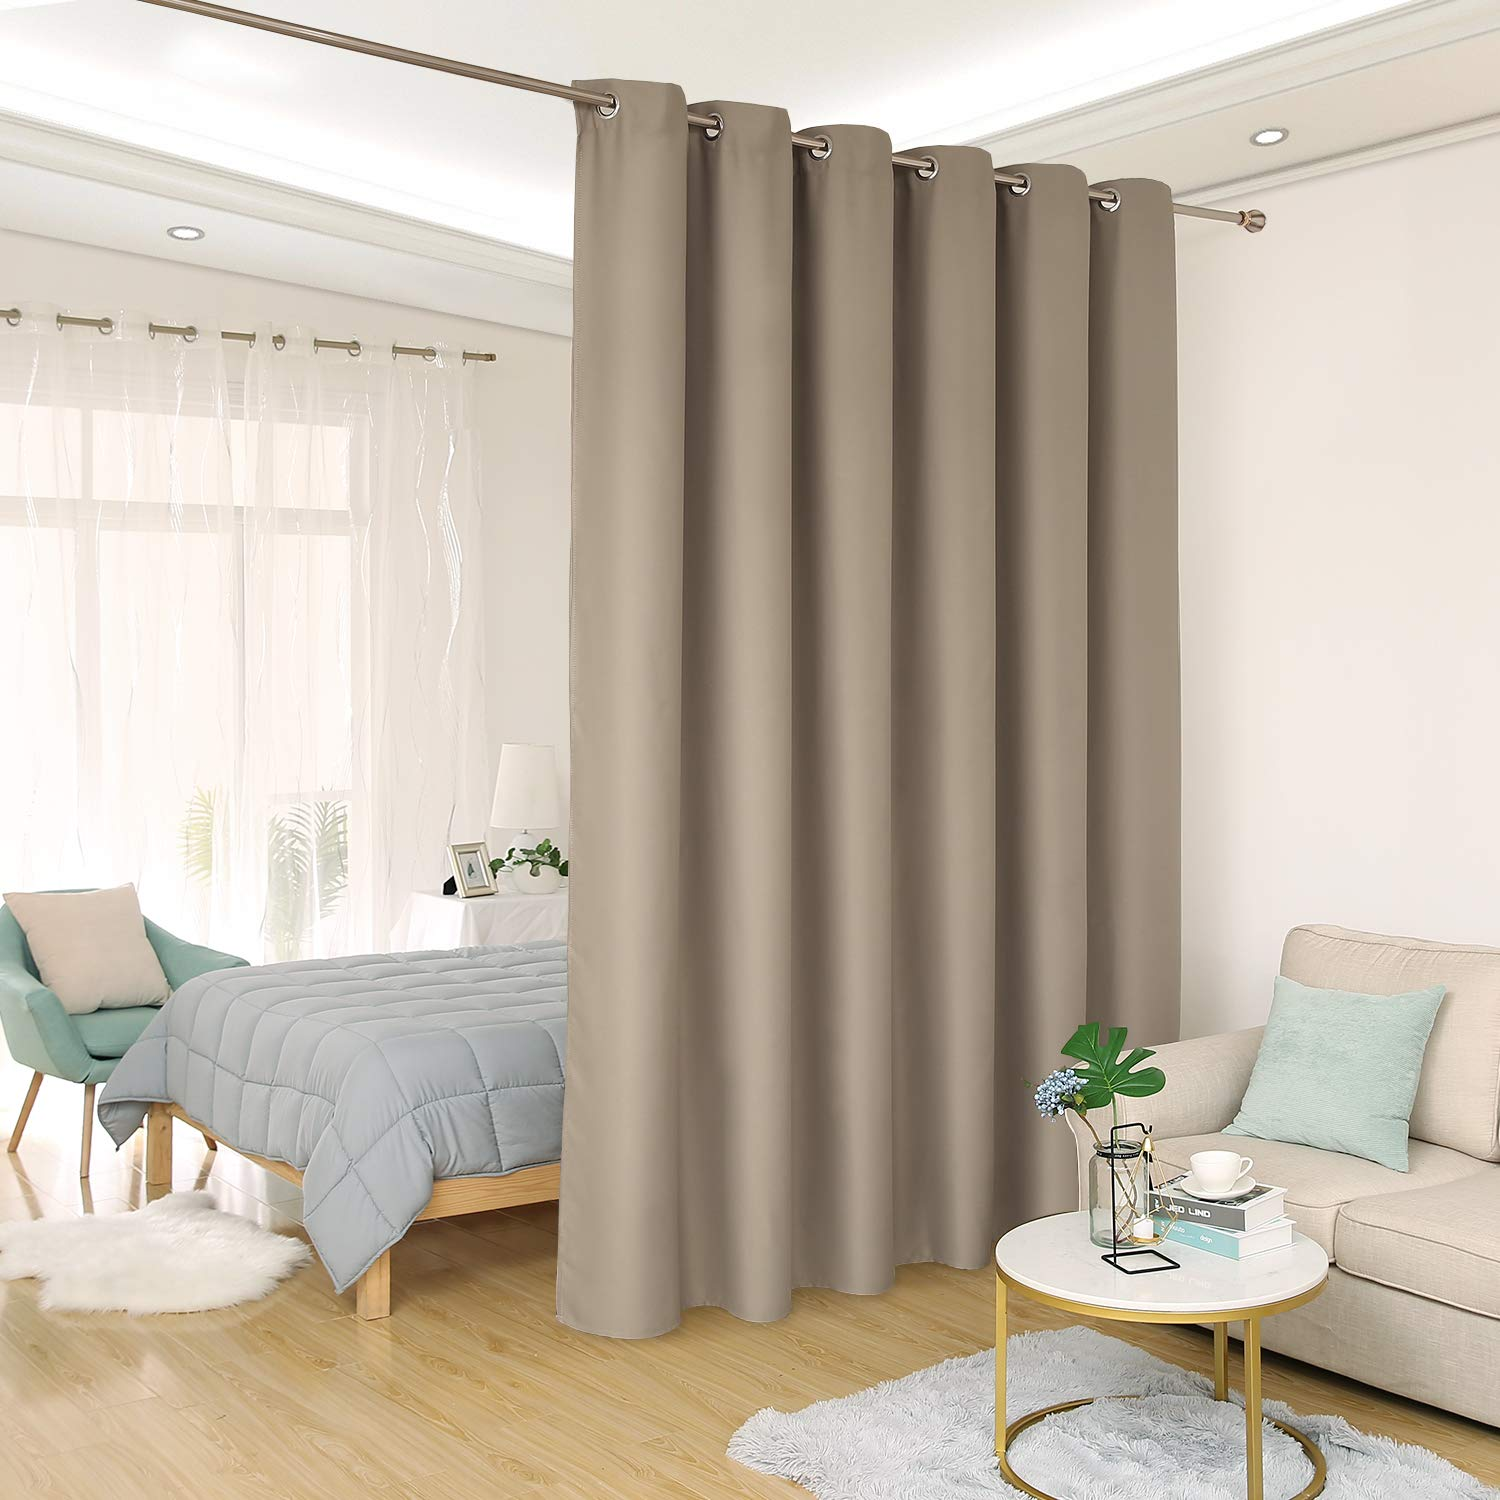 Khaki 10ft Wide x 8ft Tall Deconovo Room Divider Curtain Extra Wide Curtains Privacy Grommet Thermal Insulated Room Darkening Panel Curtains for Sliding Door, 10ft Wide x 9ft Tall Greyish White 1 Panel